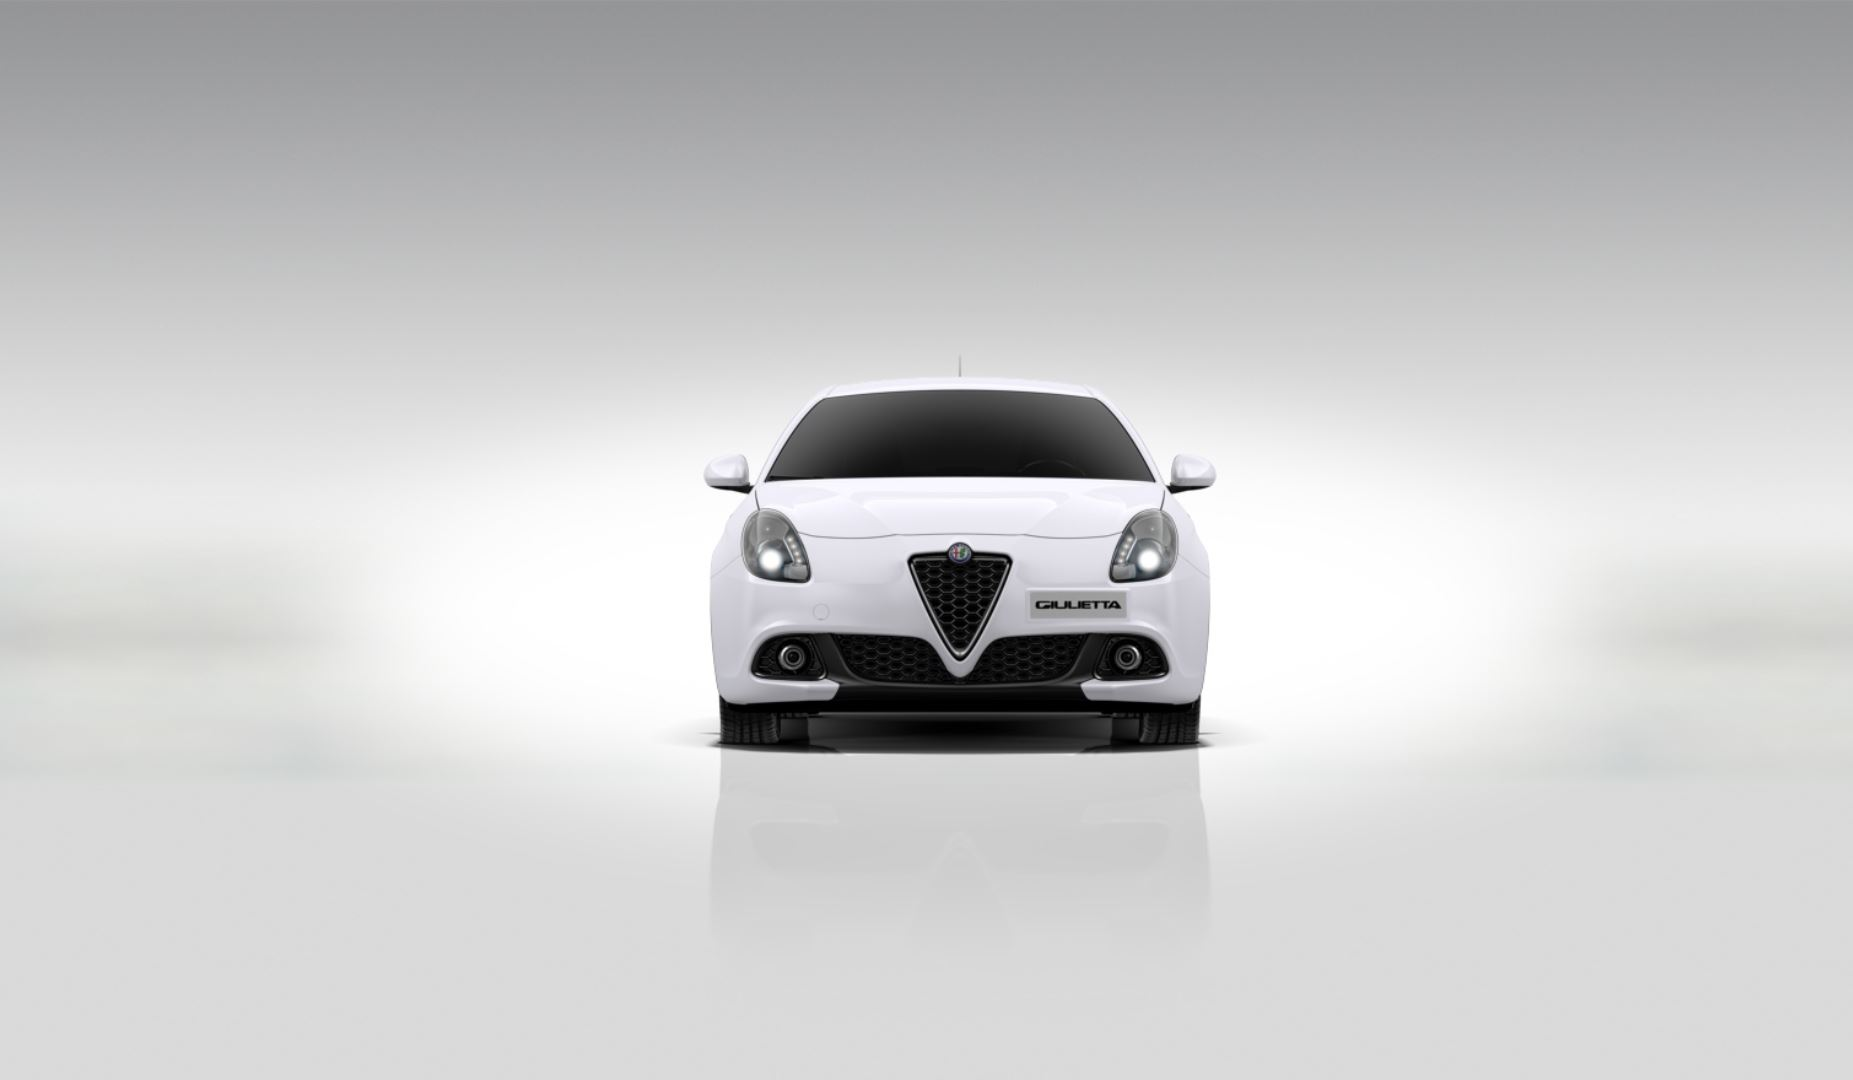 alfa romeo giulietta offerte km 0 with 5ace04bf8ead0ee008718986 on 120146237 besides 5ace04bf8ead0ee008718986 as well 5a7588338ead0eeb4a1163ff furthermore 5ace04bf8ead0ee008718986 also 90787.